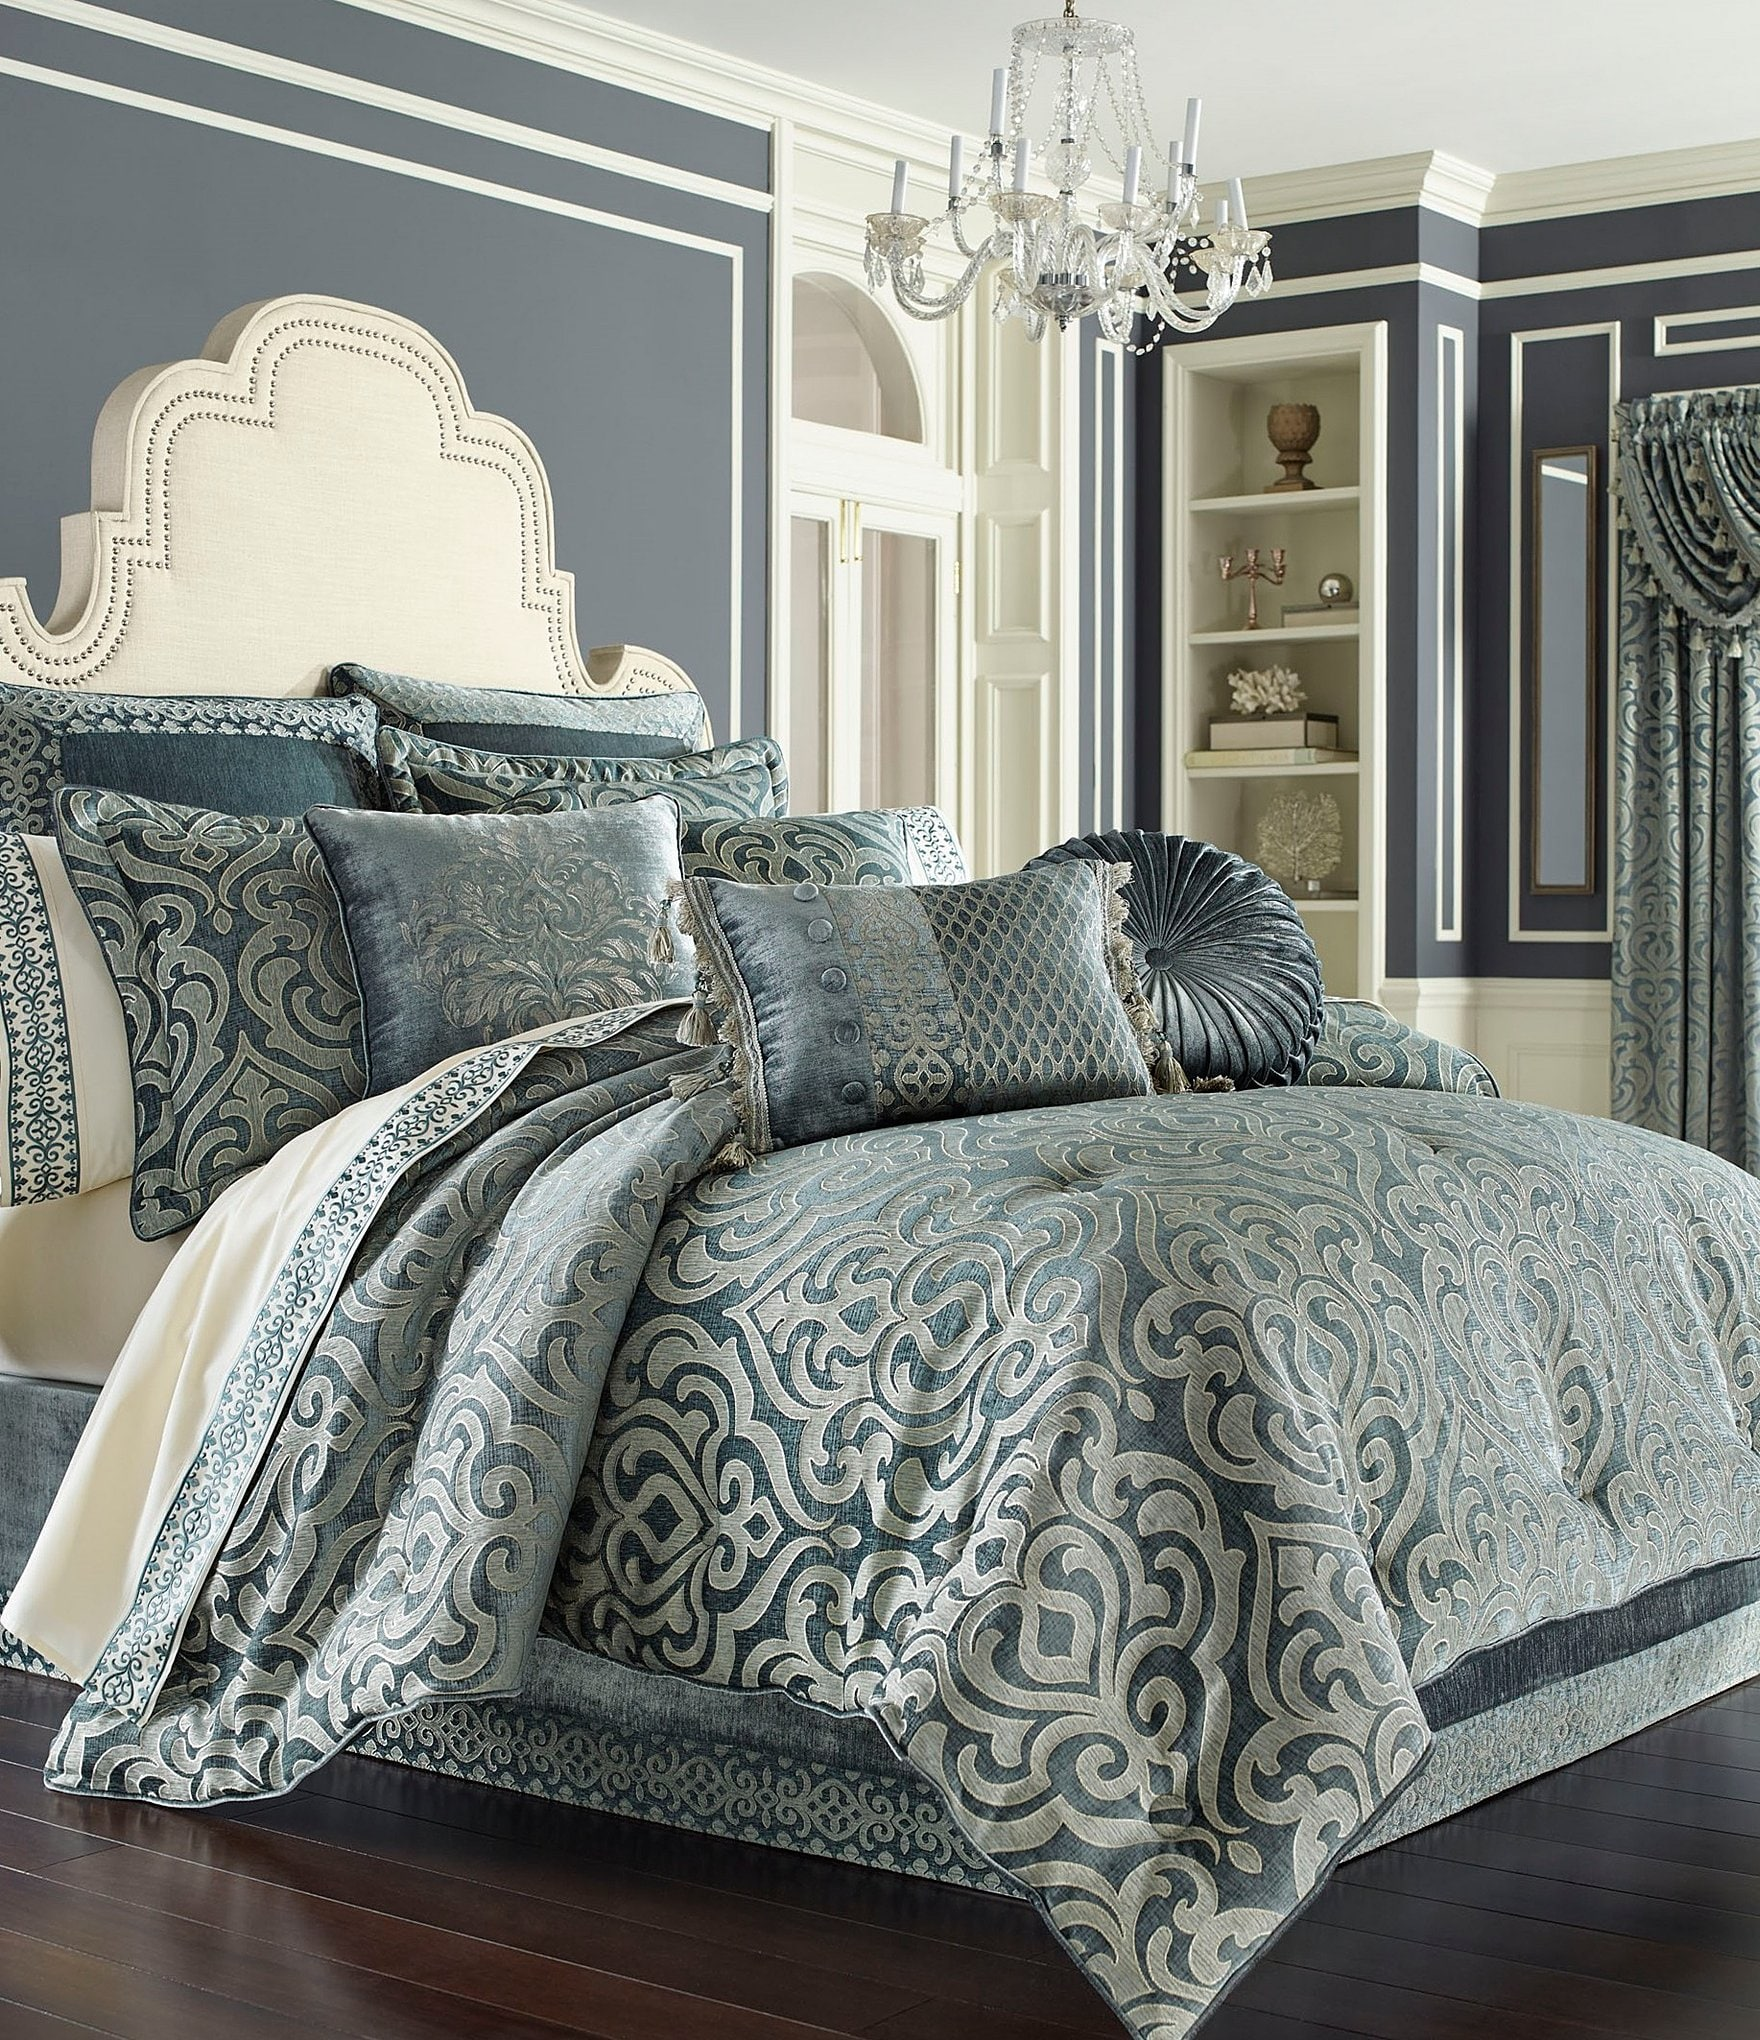 Damask King Size Bedding